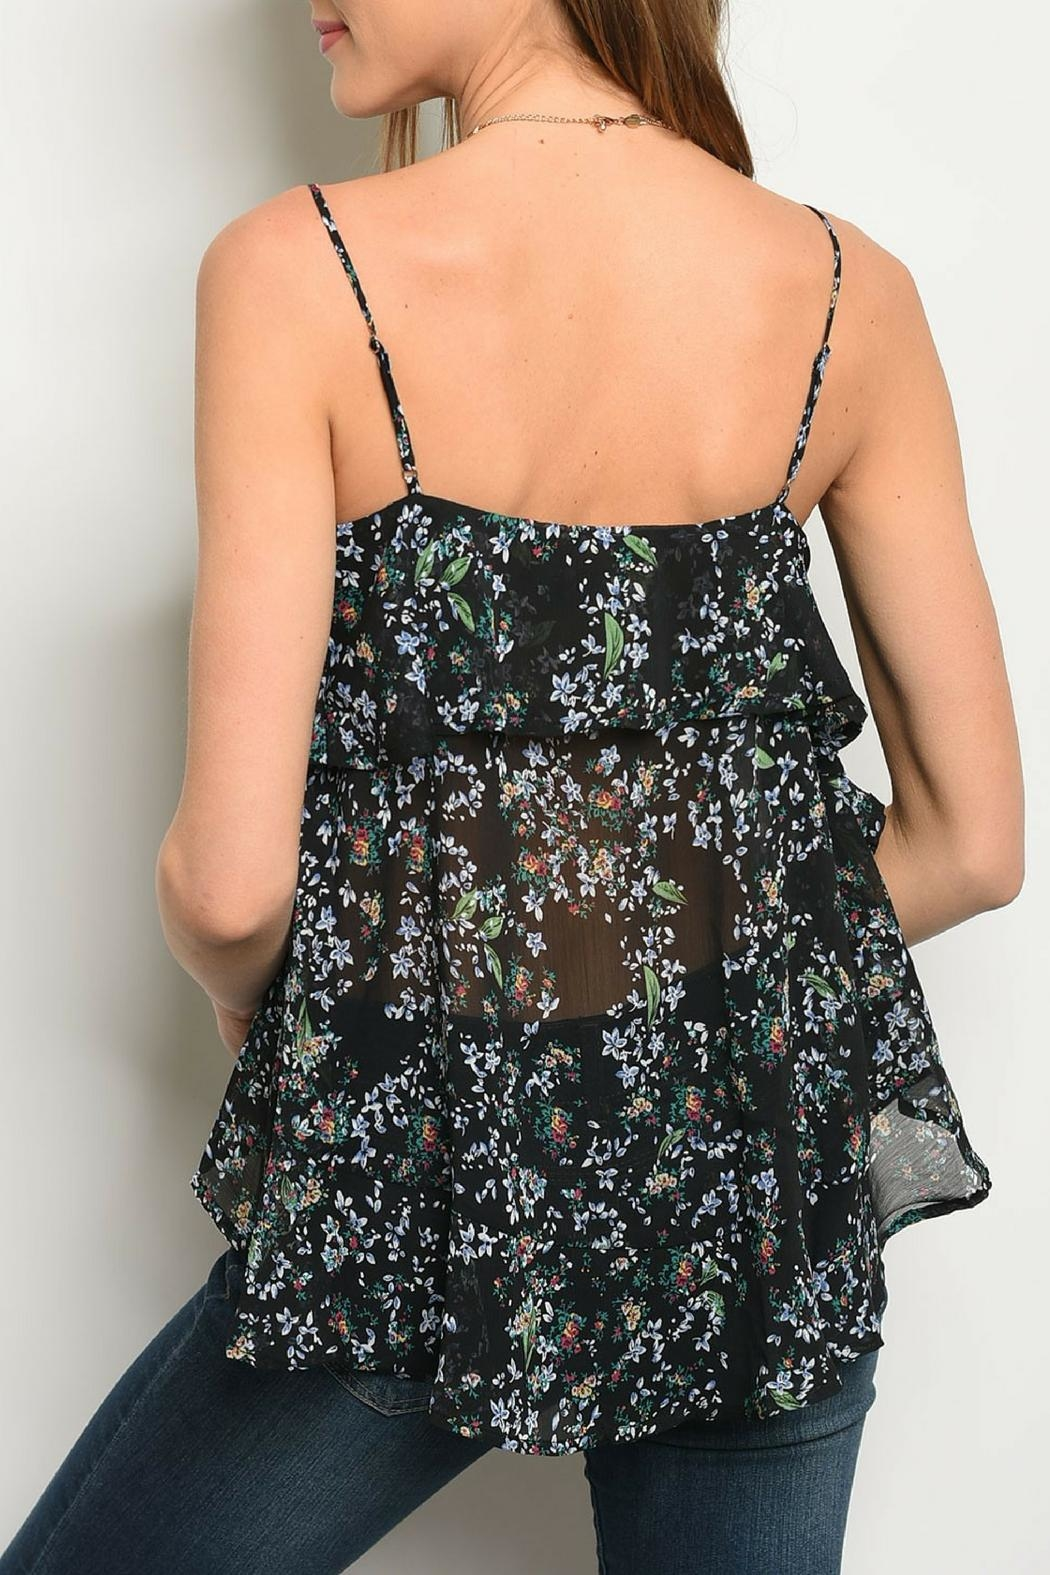 Very J Black Floral Top - Front Full Image